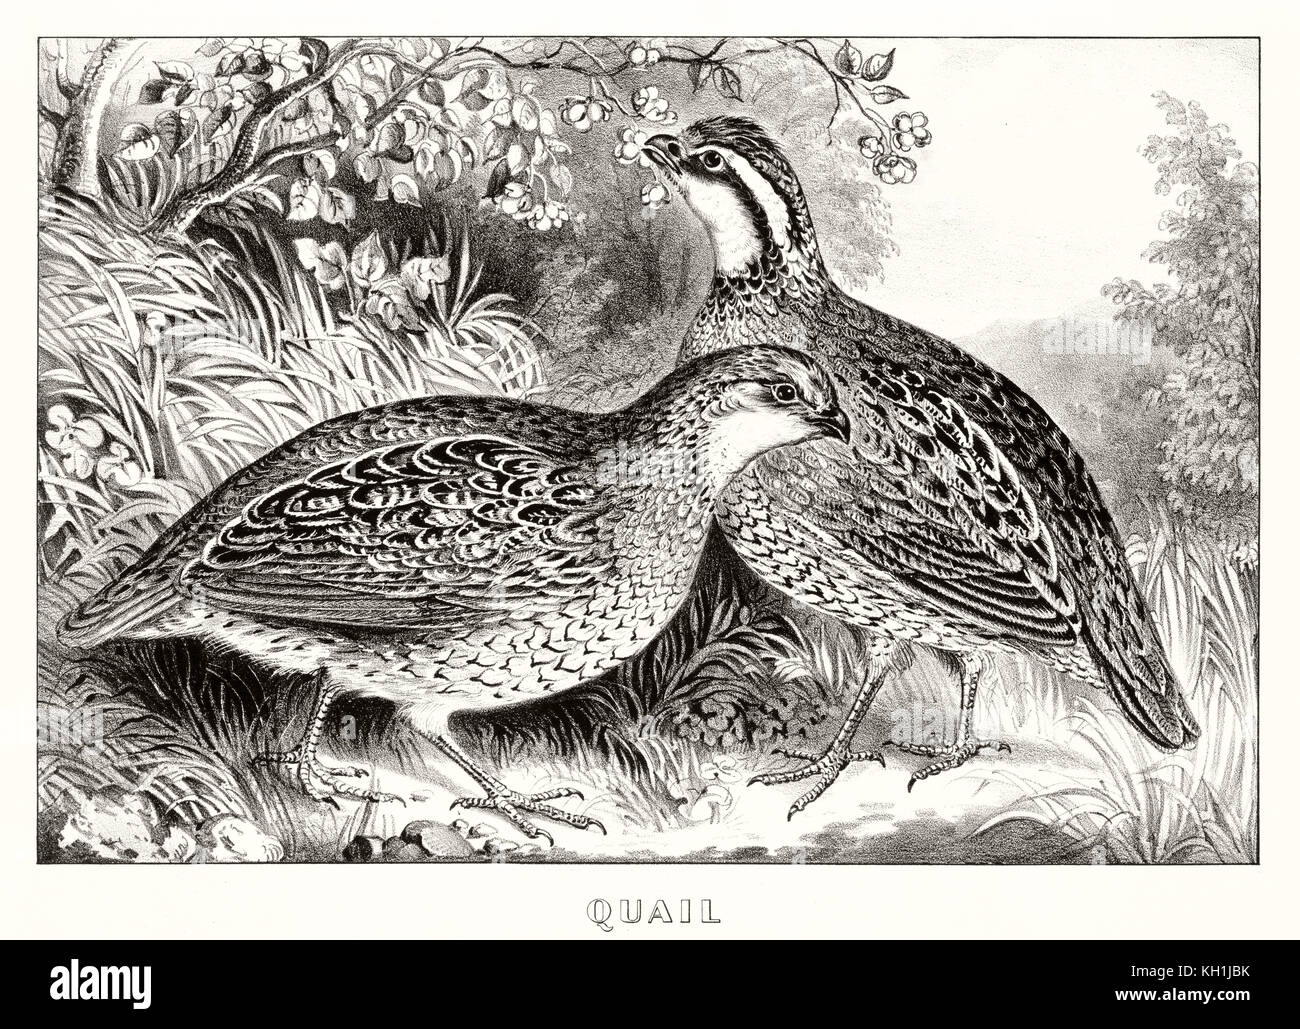 Old illustration of two quails (Coturnix coturnix). By Currier & Ives, publ. in New York, 1871 - Stock Image